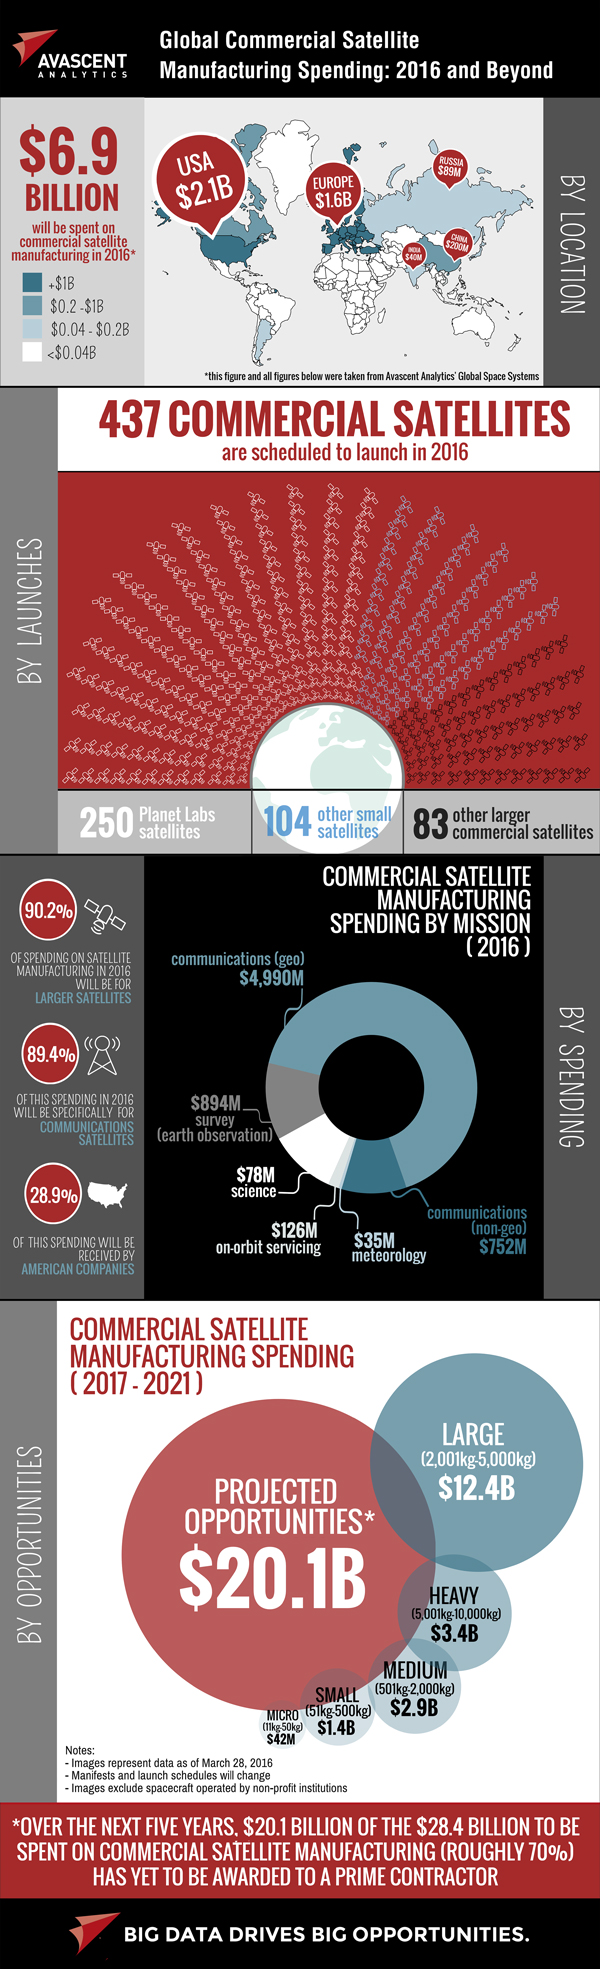 Infographic - Global Commercial Satellite Manufacturing Spending: 2016 and Beyond